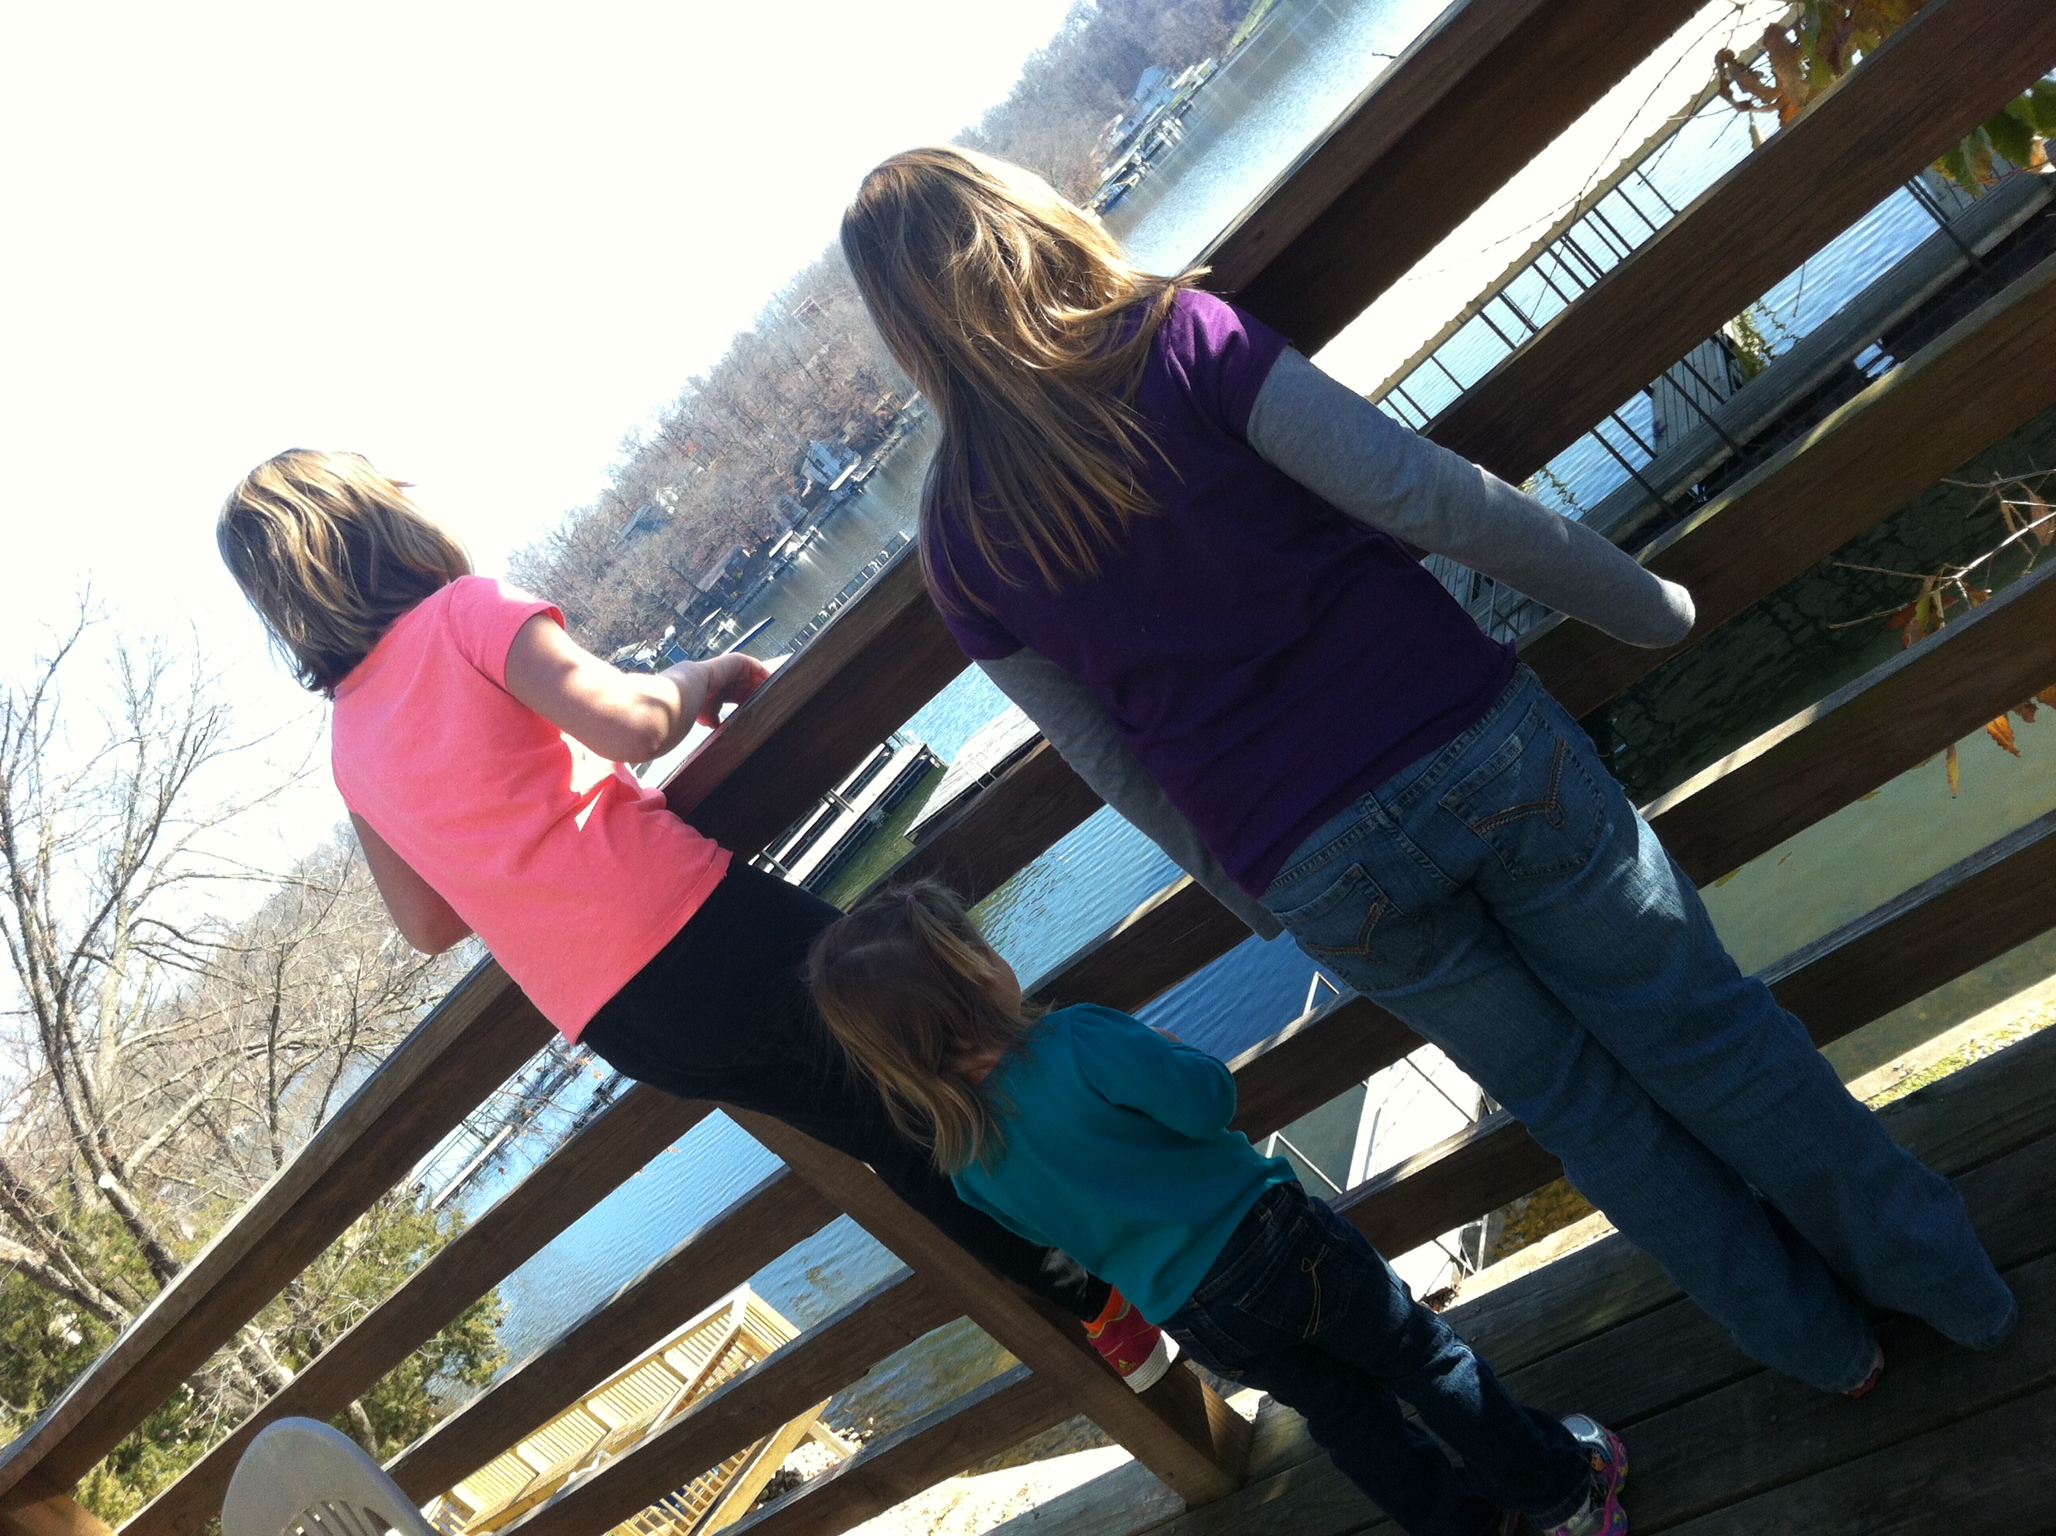 Family Lodging at Point Randall Resort in the Lake of the Ozarks, Missouri